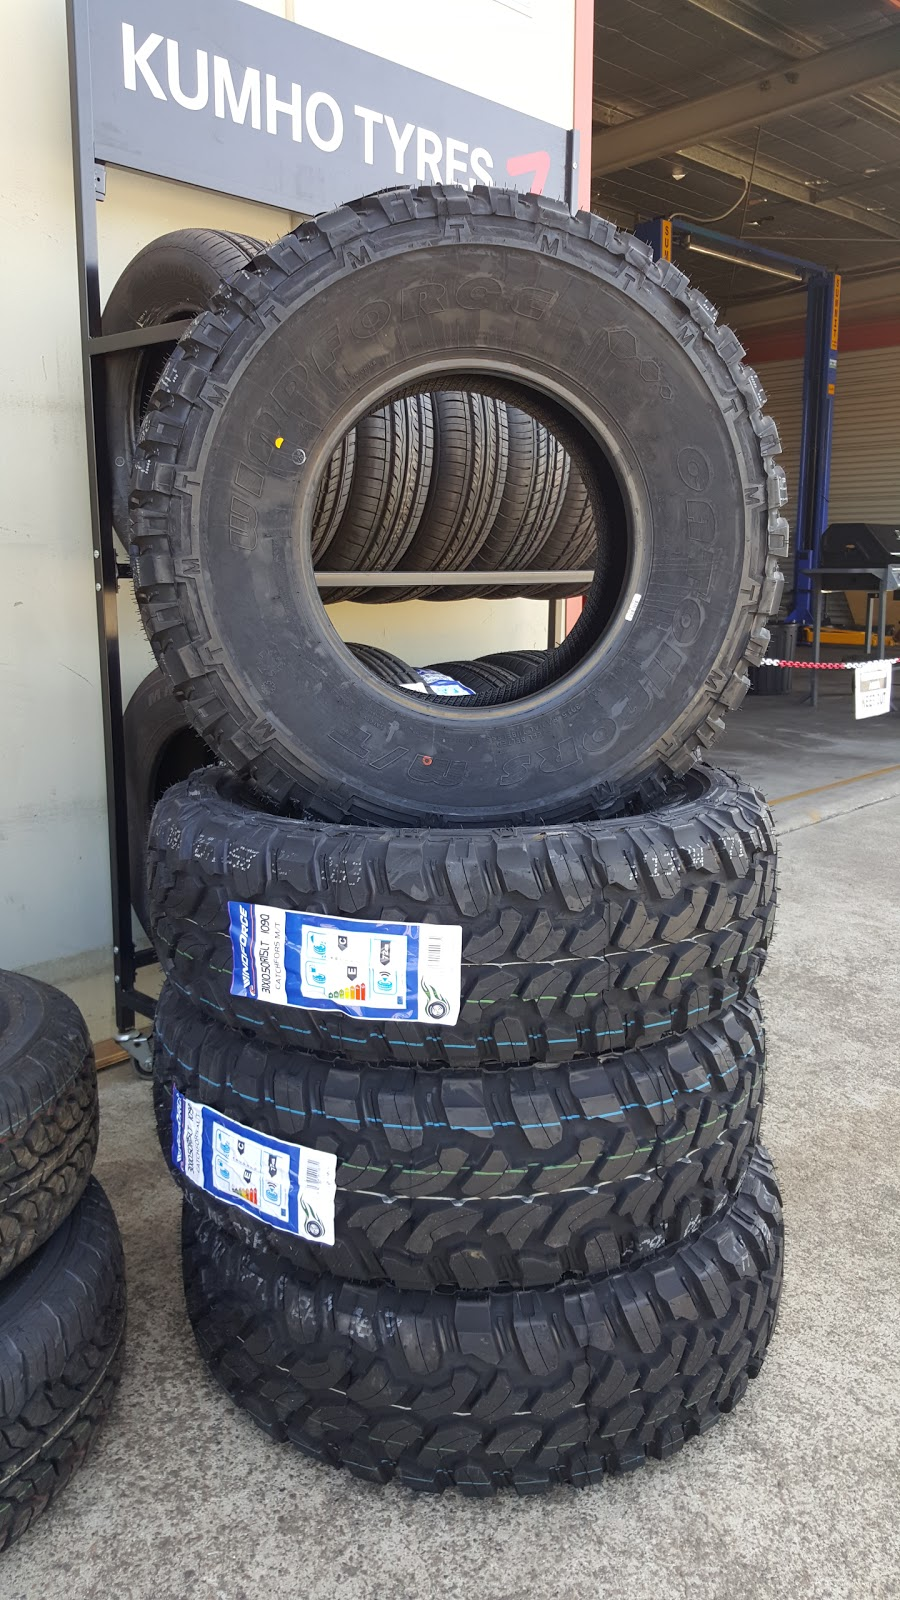 Rutherford Motors   car repair   126/128 New England Hwy, Rutherford NSW 2320, Australia   0249328671 OR +61 2 4932 8671